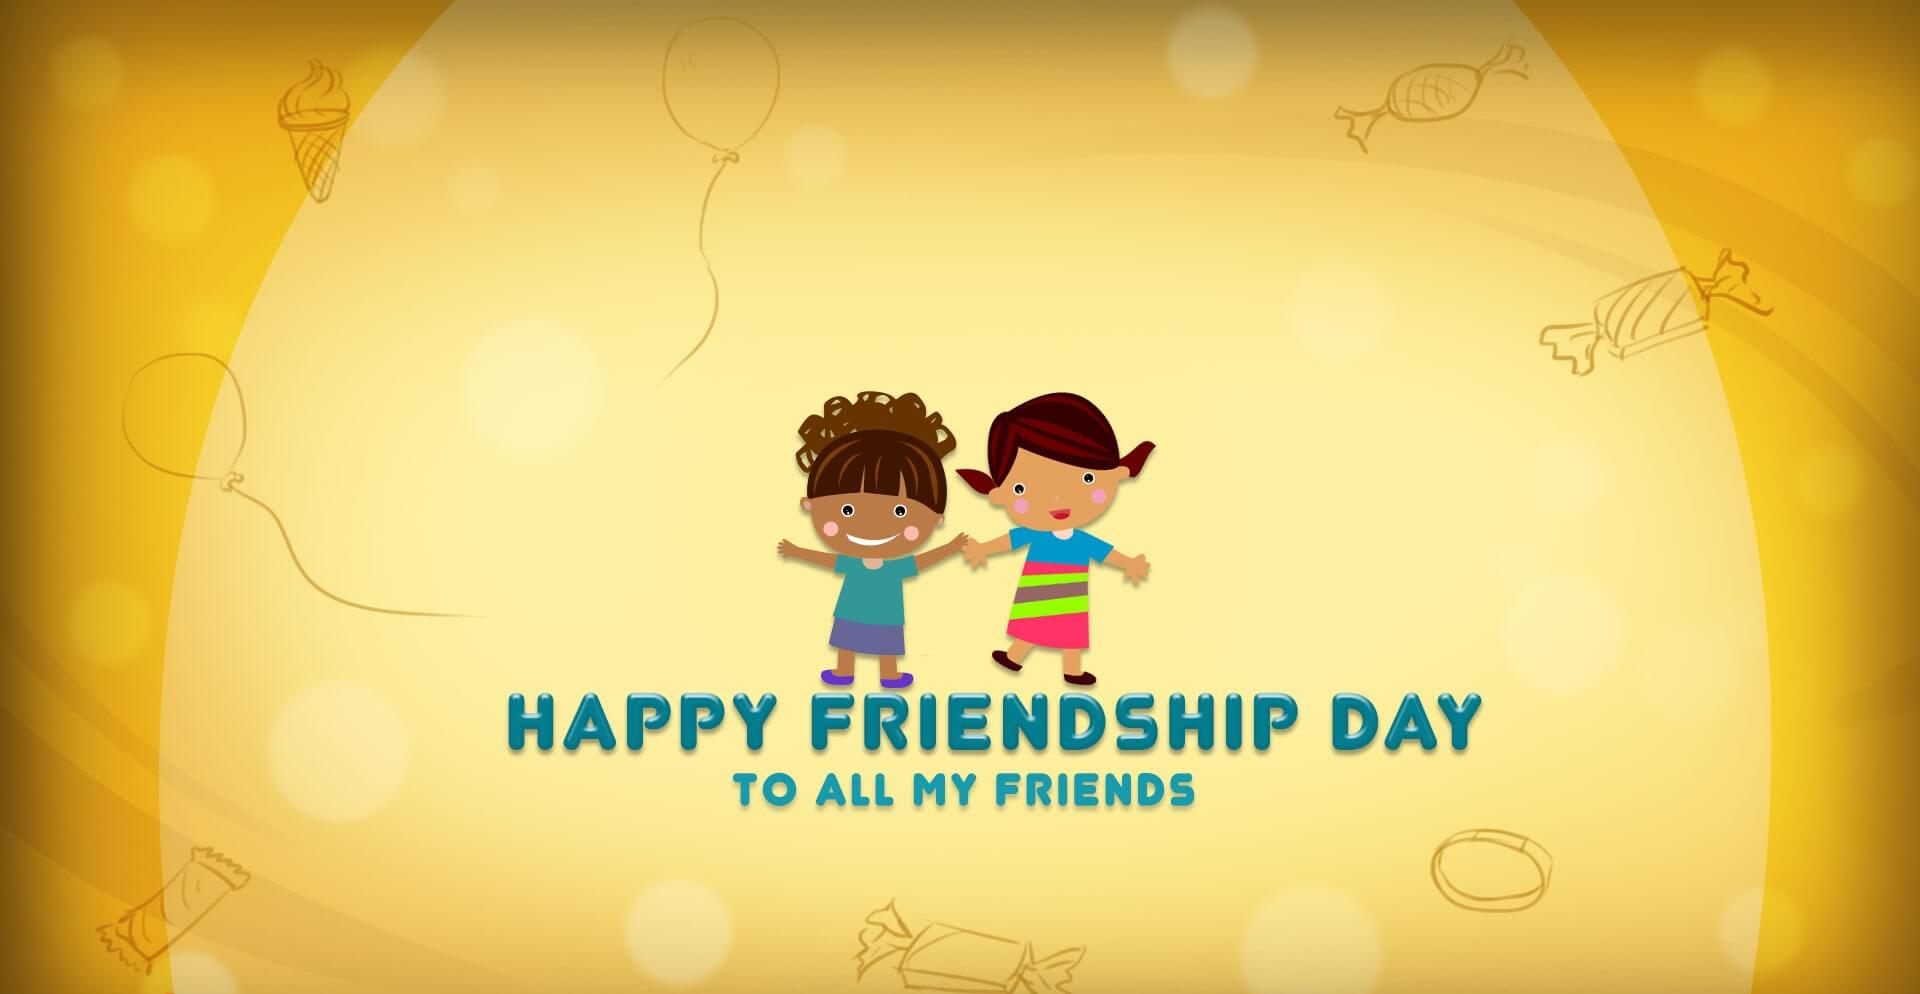 happy friendship day HD wallpaper for friends